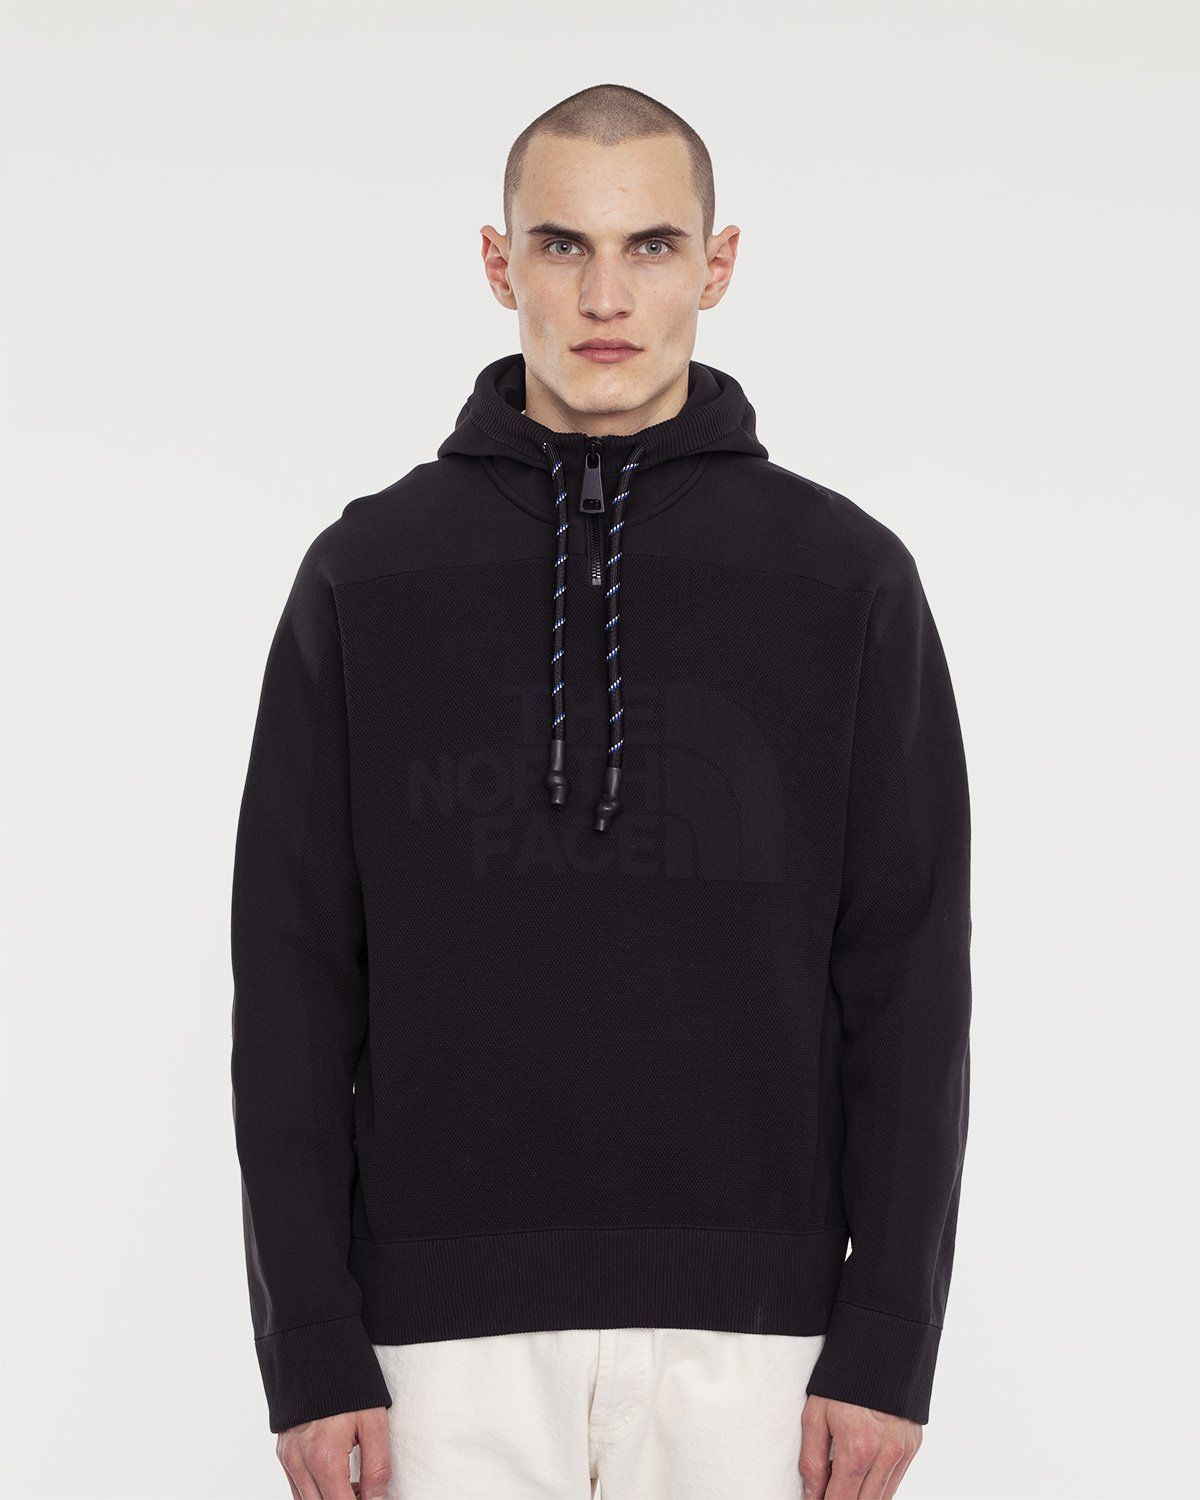 The North Face Black Series - Engineered Knit Hoodie Black - Image 2